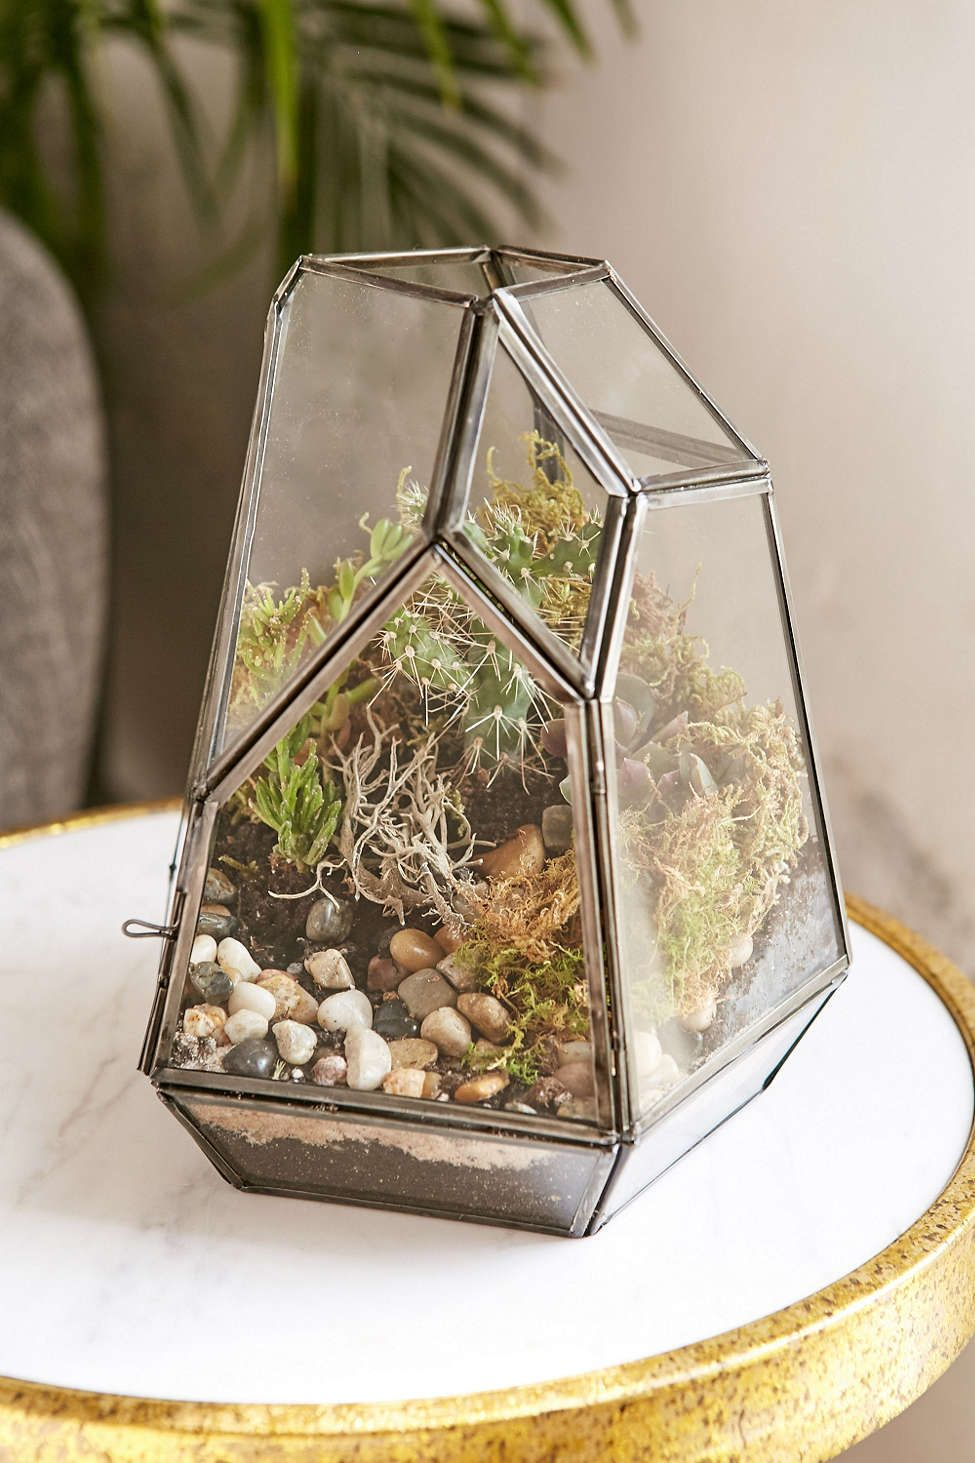 Magical Thinking Smoked Glass Terrarium - Urban Outfitters #UOContest #UOonCampus